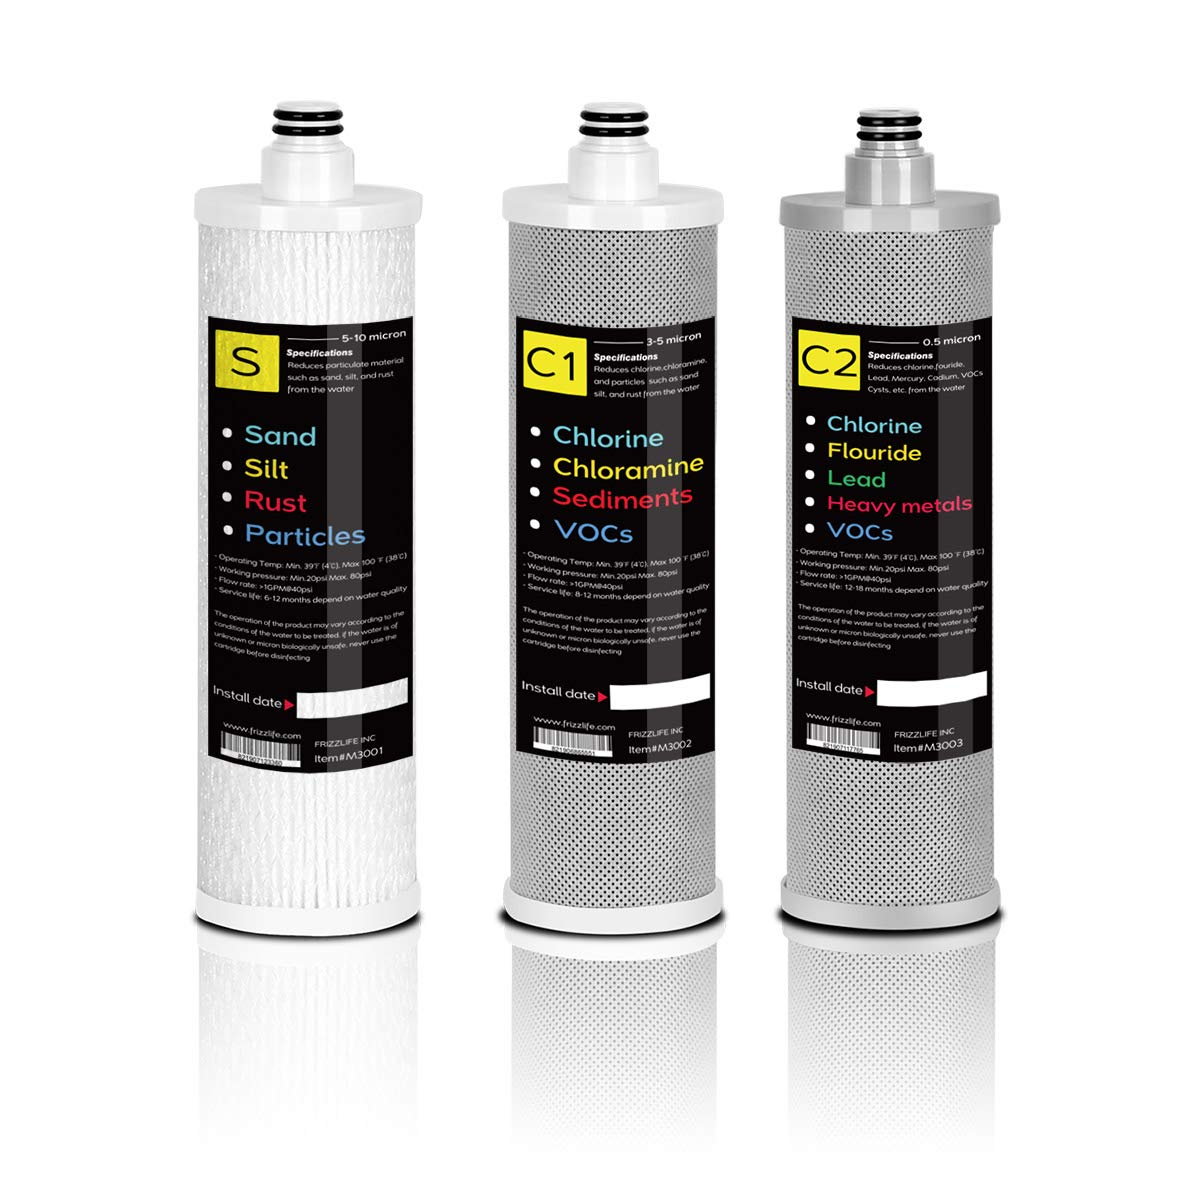 FRIZZLIFE M3004 Replacement Filter for SP99 SK99 Water Filter System (3 Pack)